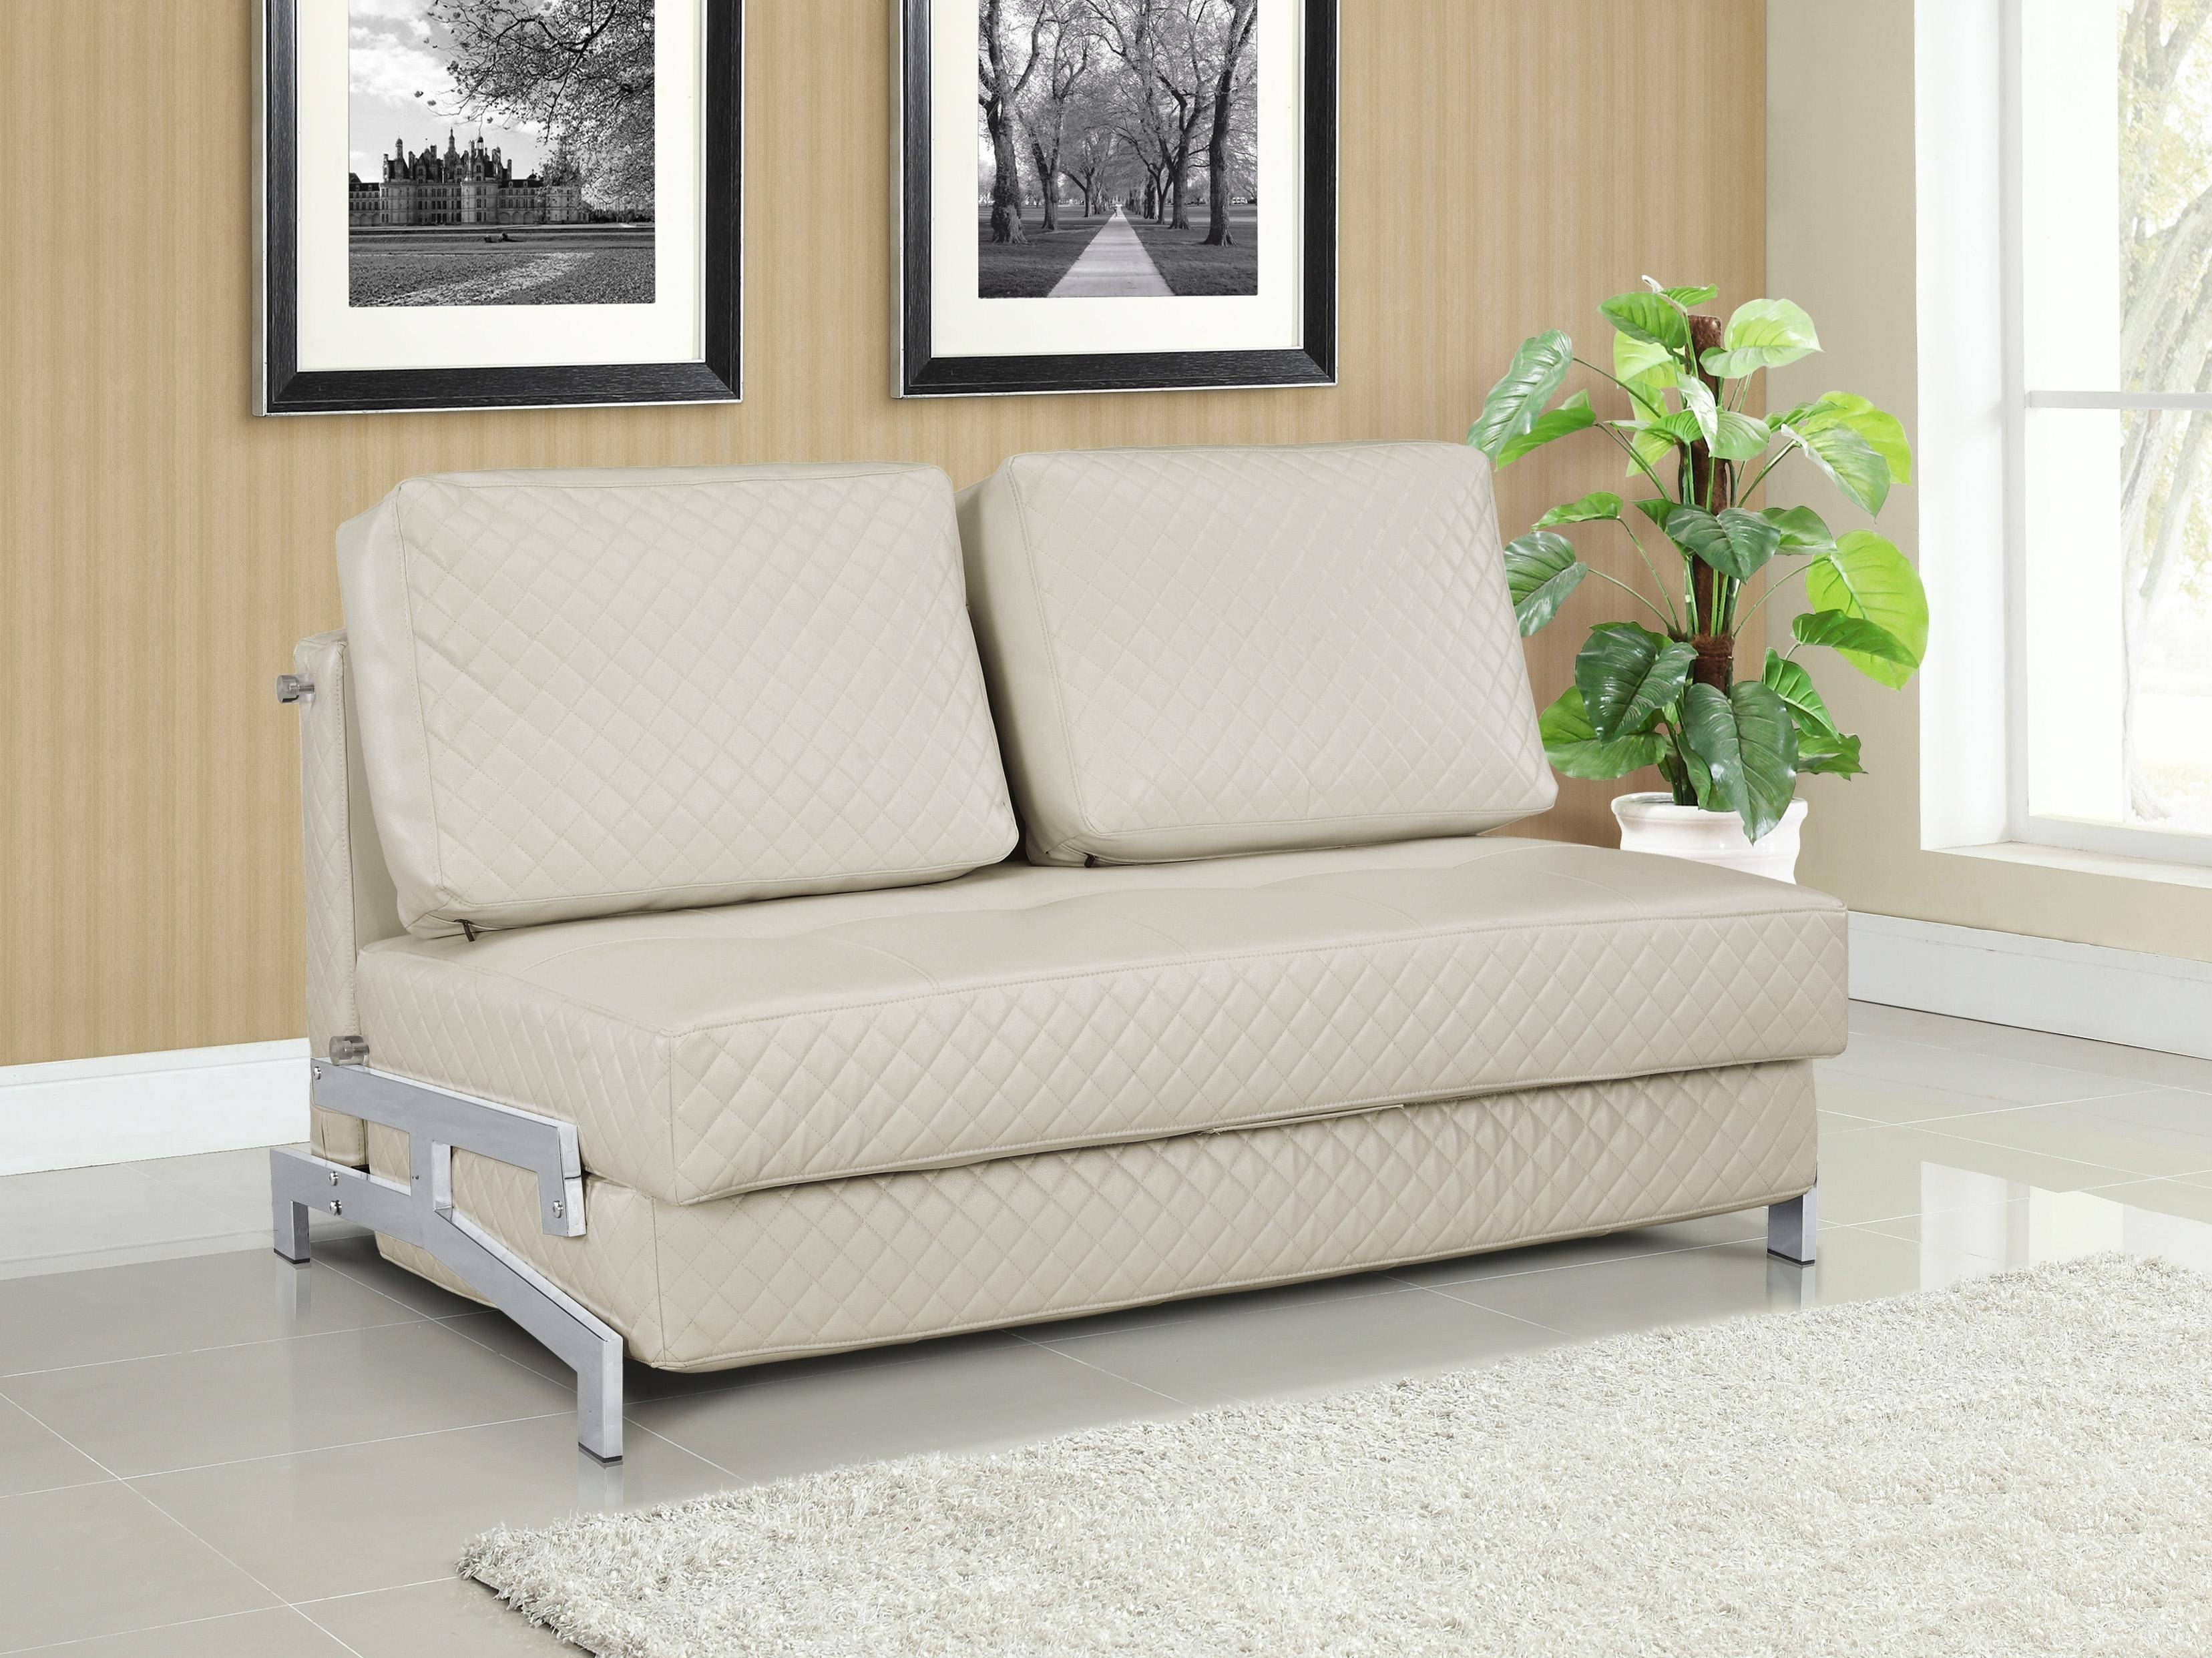 Sofa Ideas: Euro Sofas (Explore #18 Of 20 Photos) with regard to Euro Sofas (Image 11 of 15)